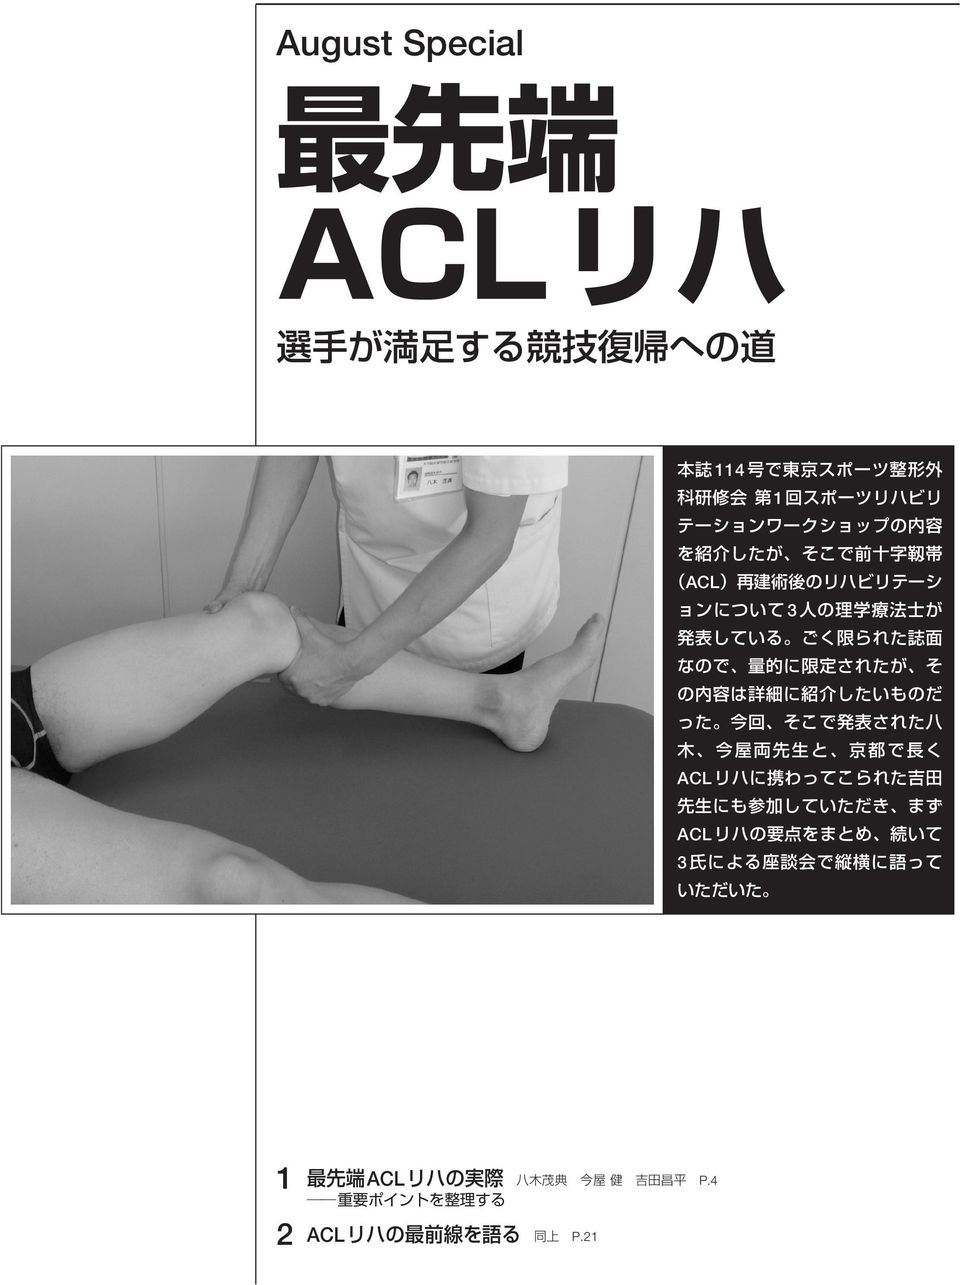 ACL ACL 3 1